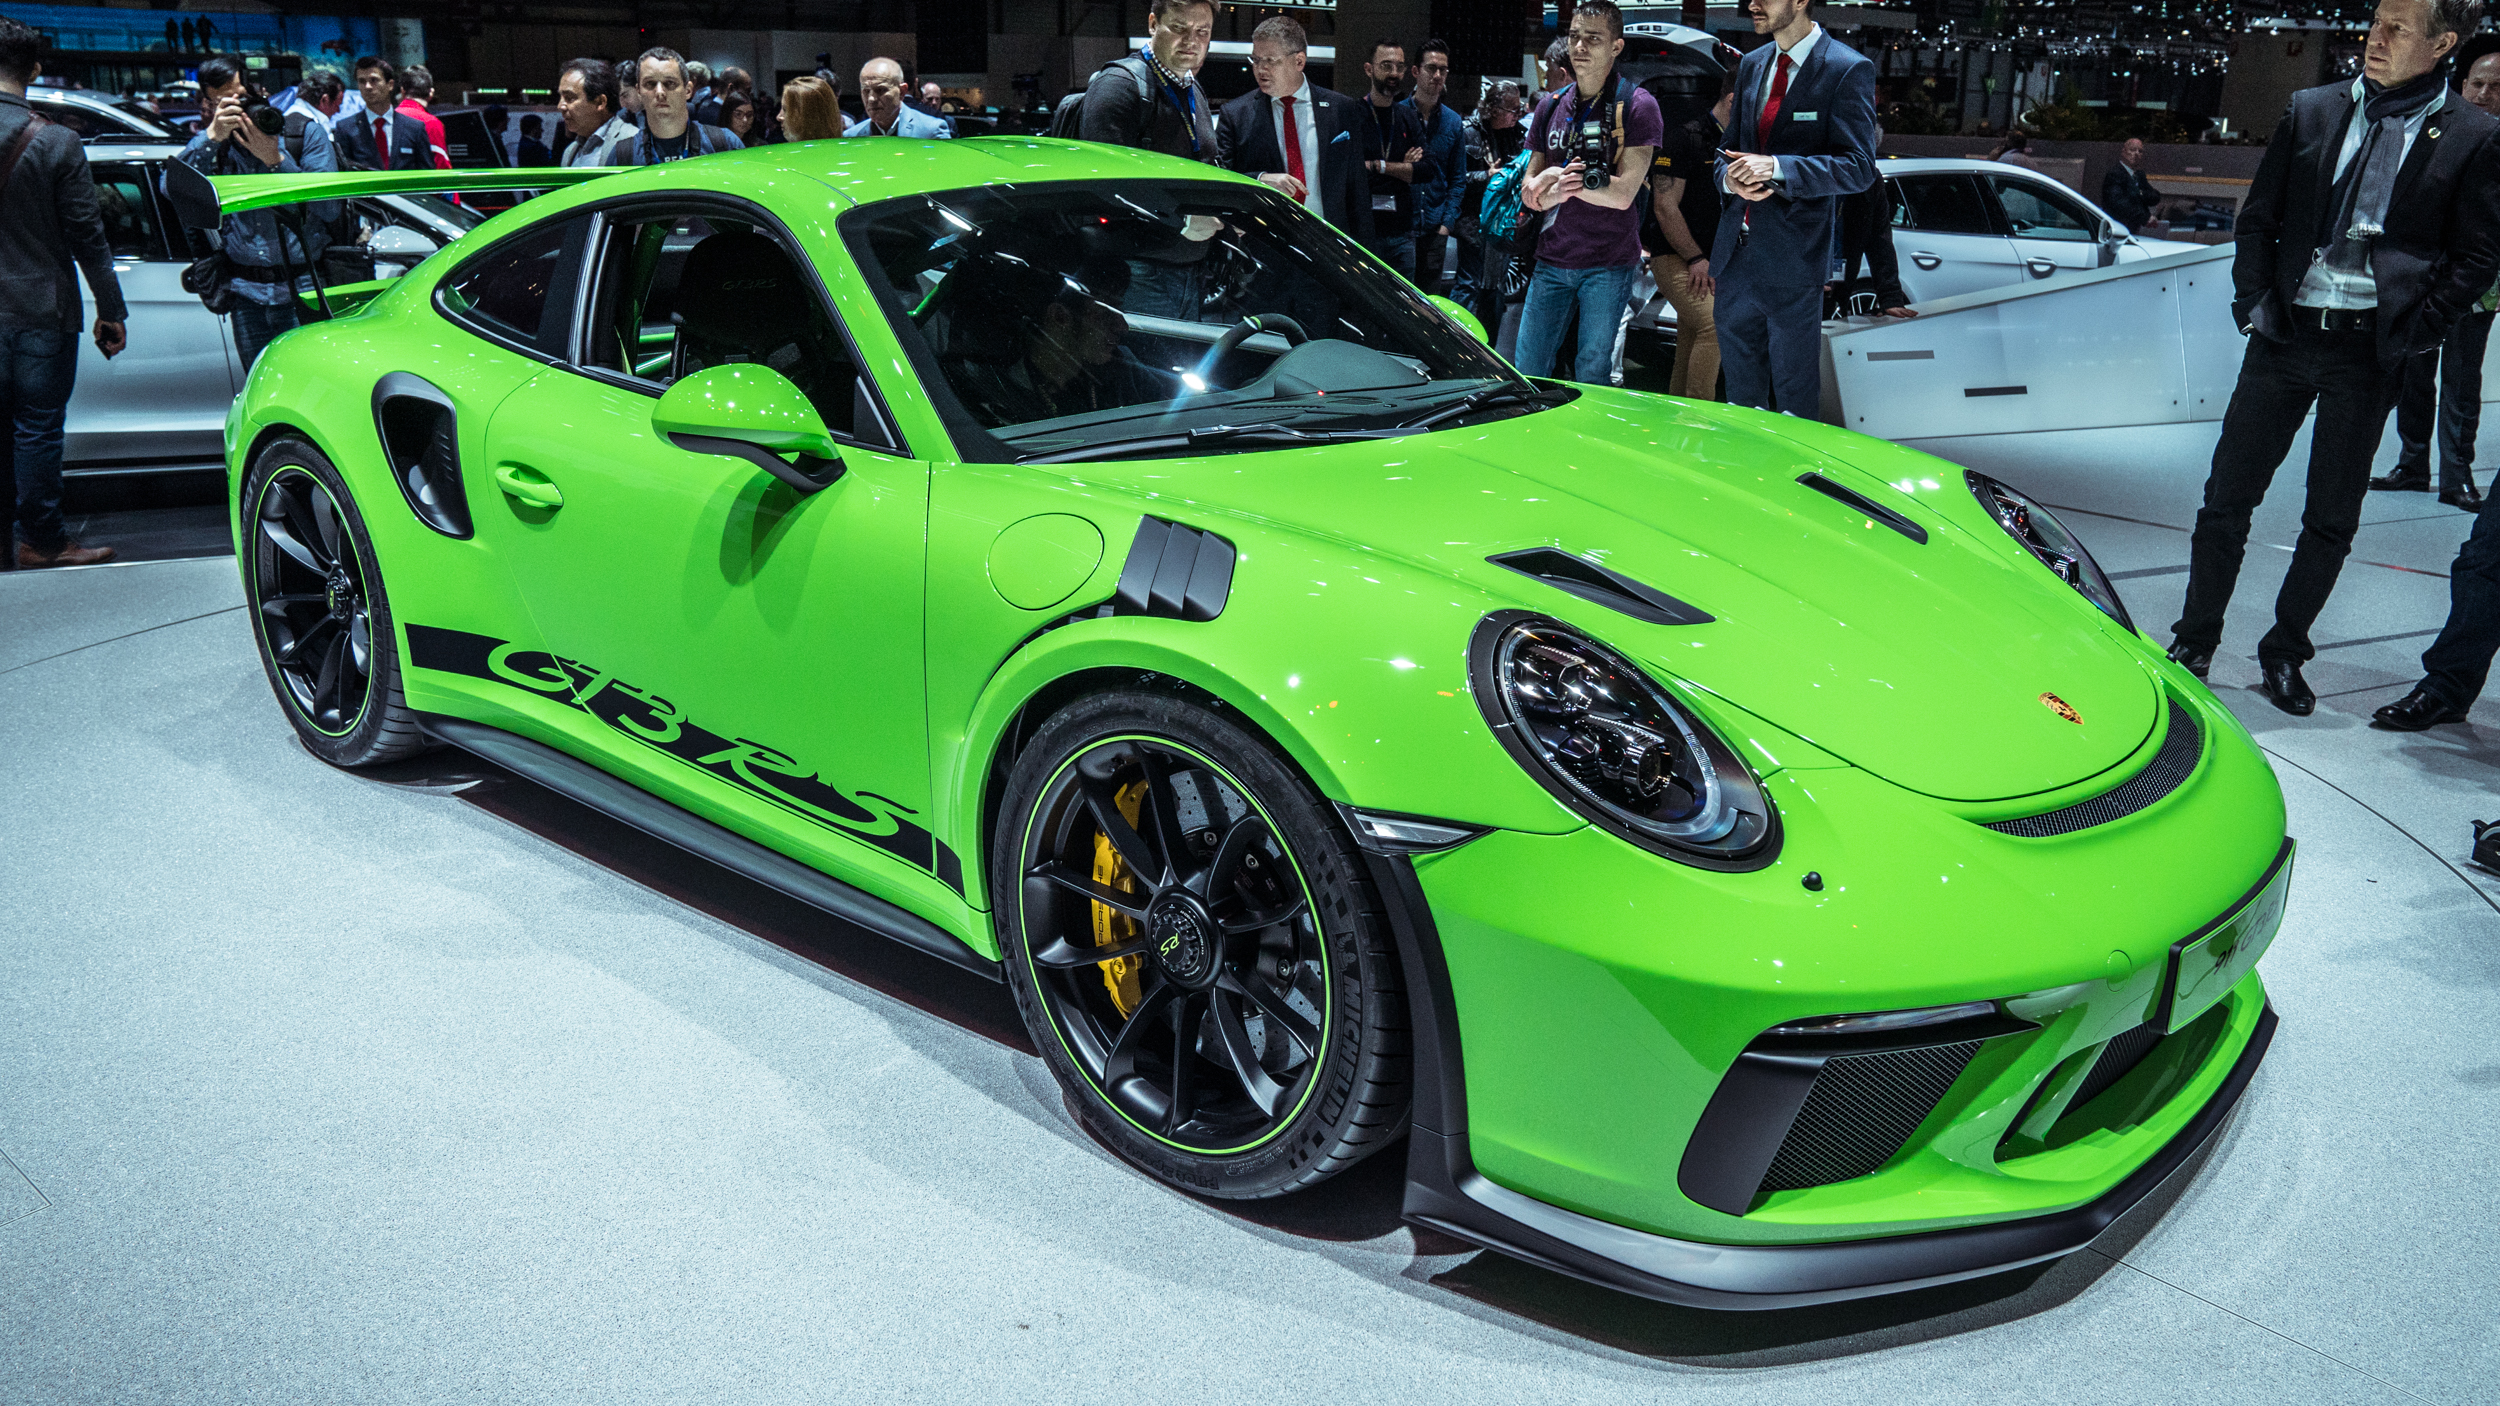 This Is The New 520bhp Porsche 911 GT3 RS